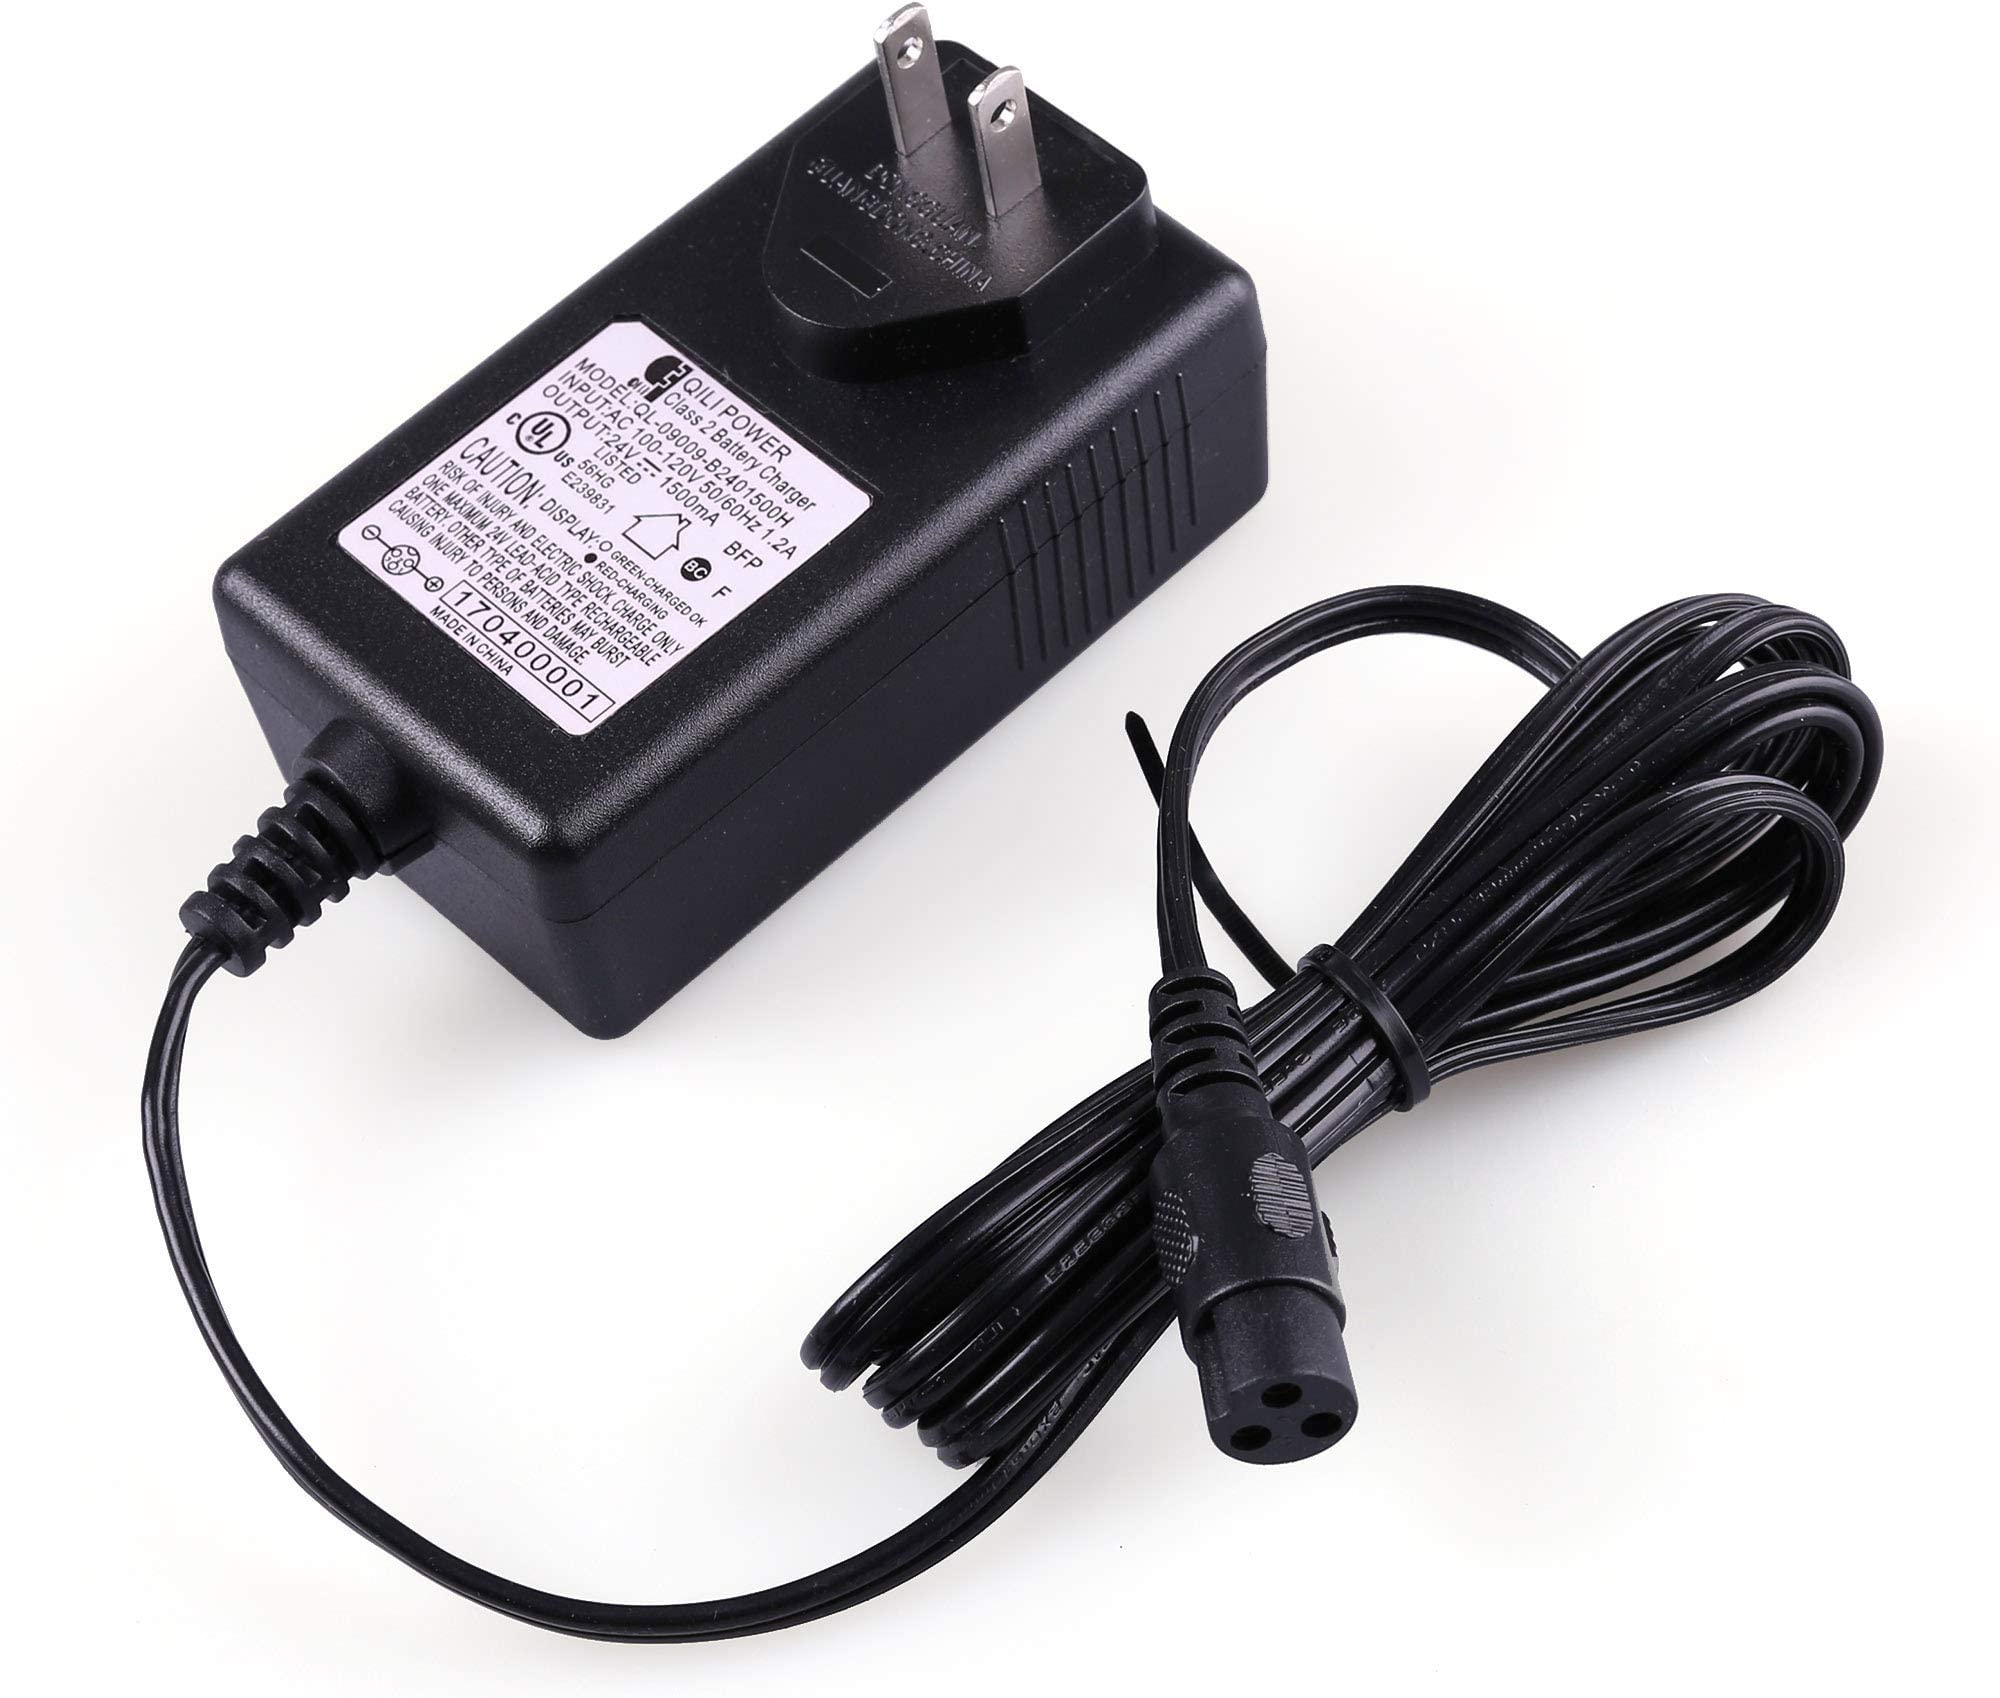 scooter batteries battery chargers amazon com rh amazon com